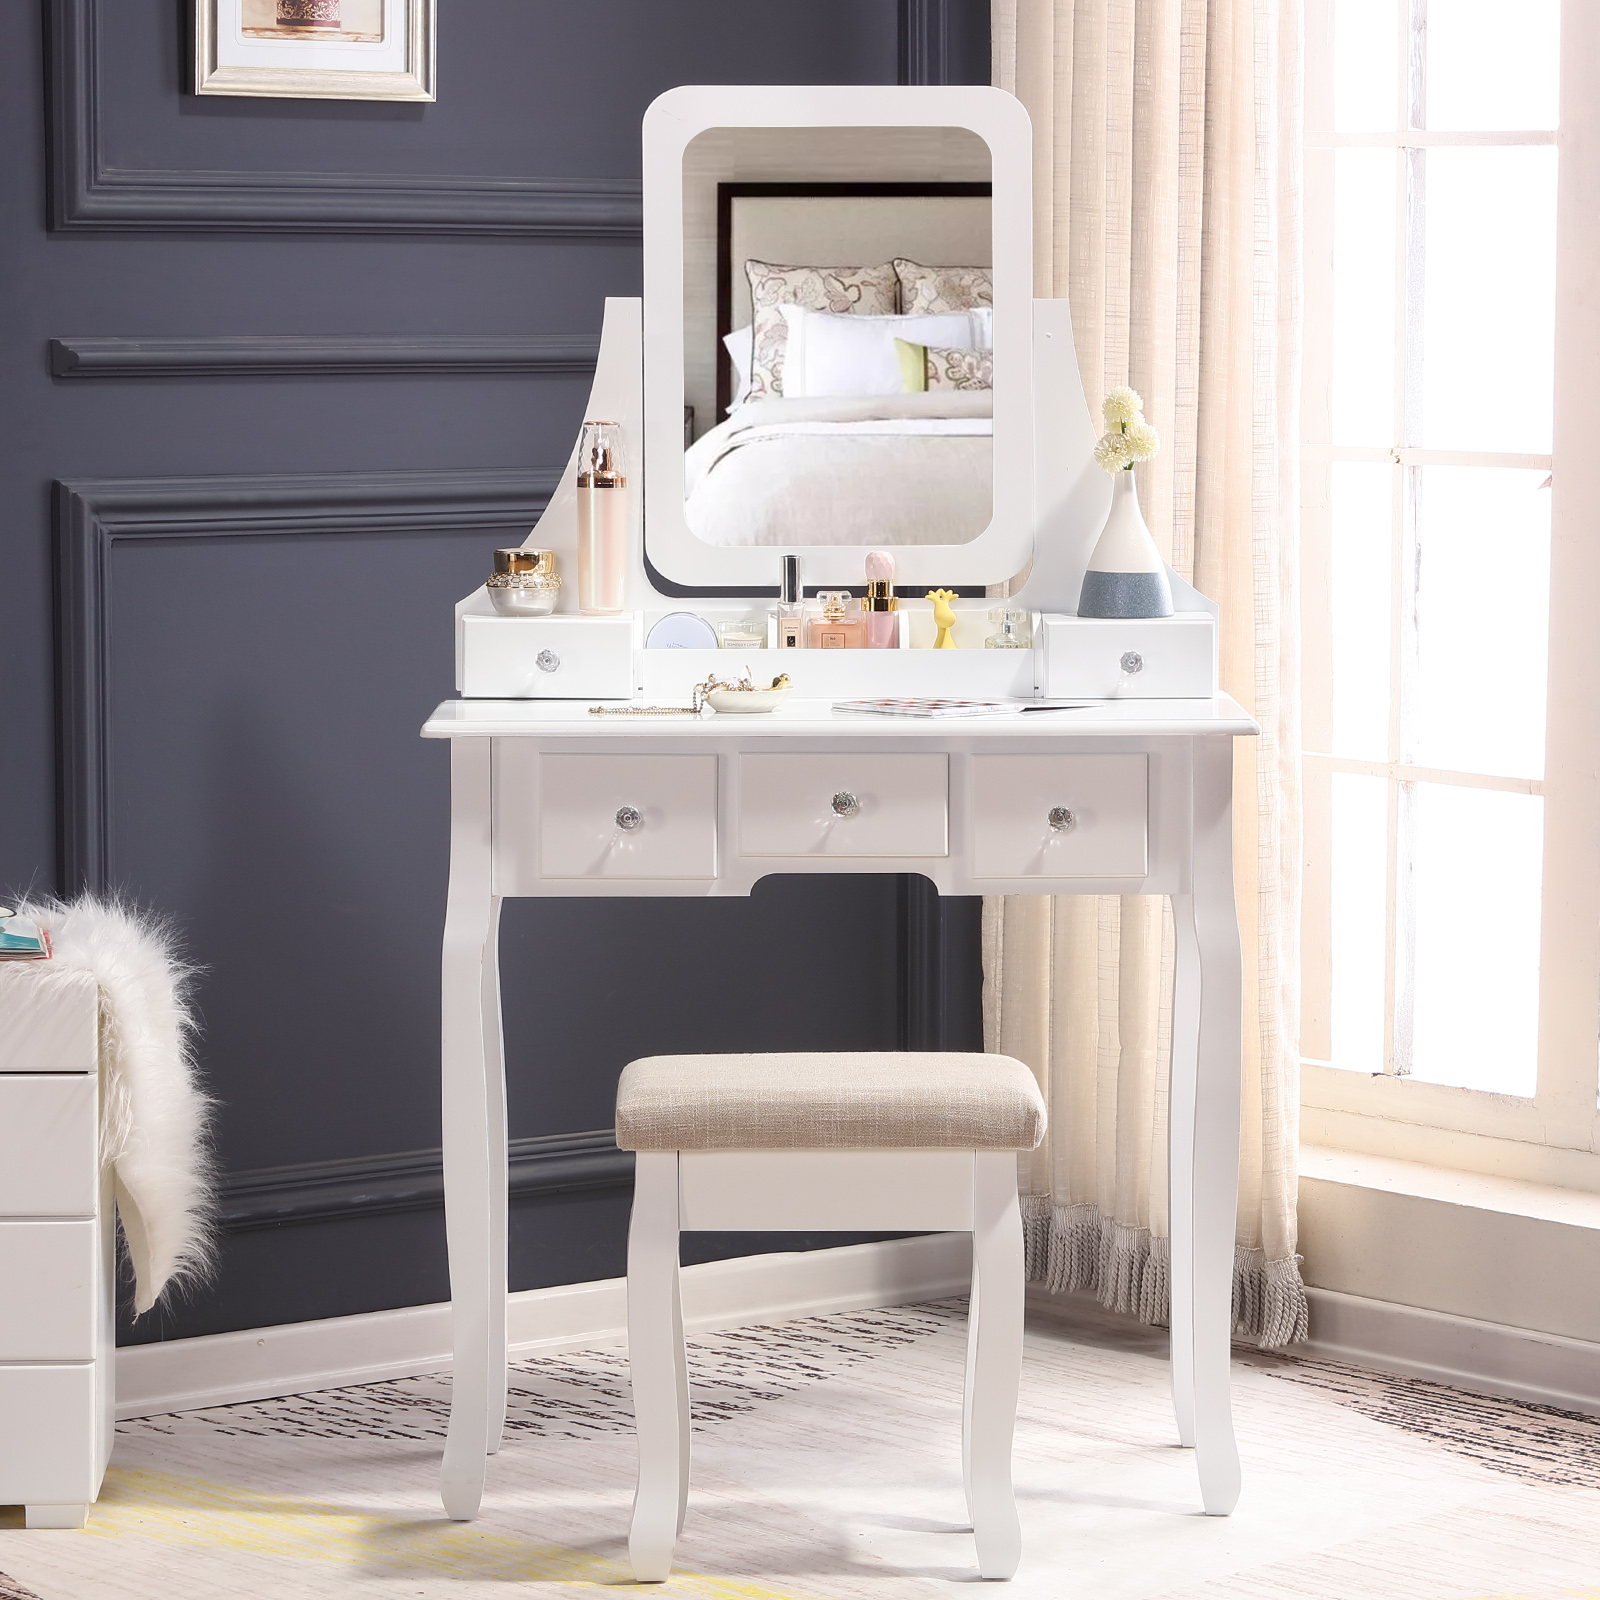 Swell Details About White Vanity Table Rotatable Mirror Soft Stool Set 5 Drawer 3 Compartments Home Caraccident5 Cool Chair Designs And Ideas Caraccident5Info